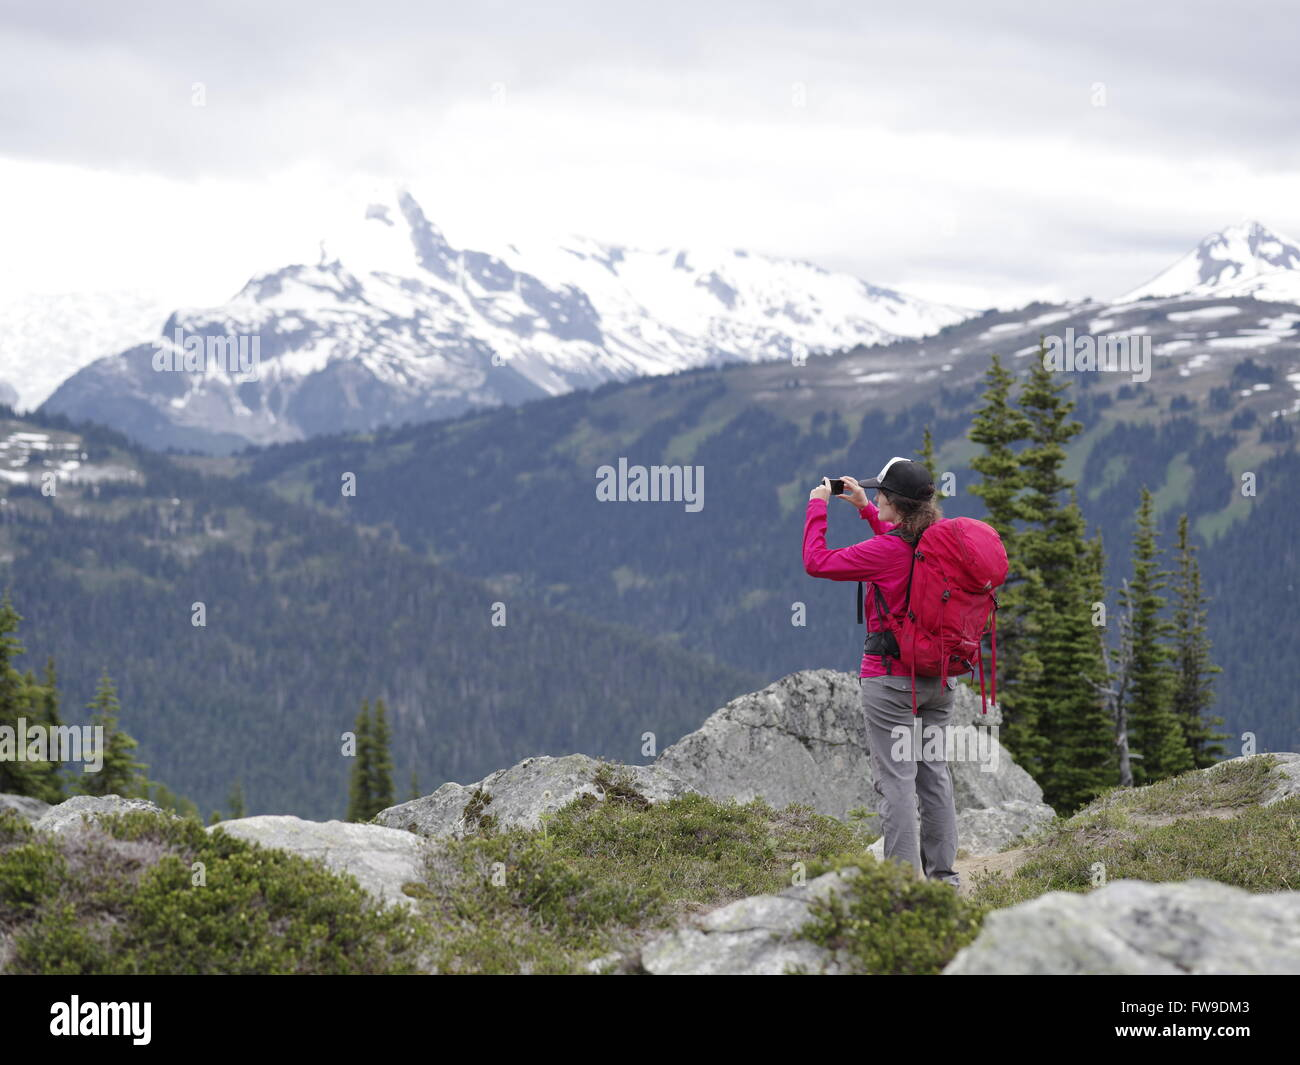 A young female hiker on mountain summit holding a smart phone in Whistler Blackcomb alpine hike, BC, Canada - Stock Image